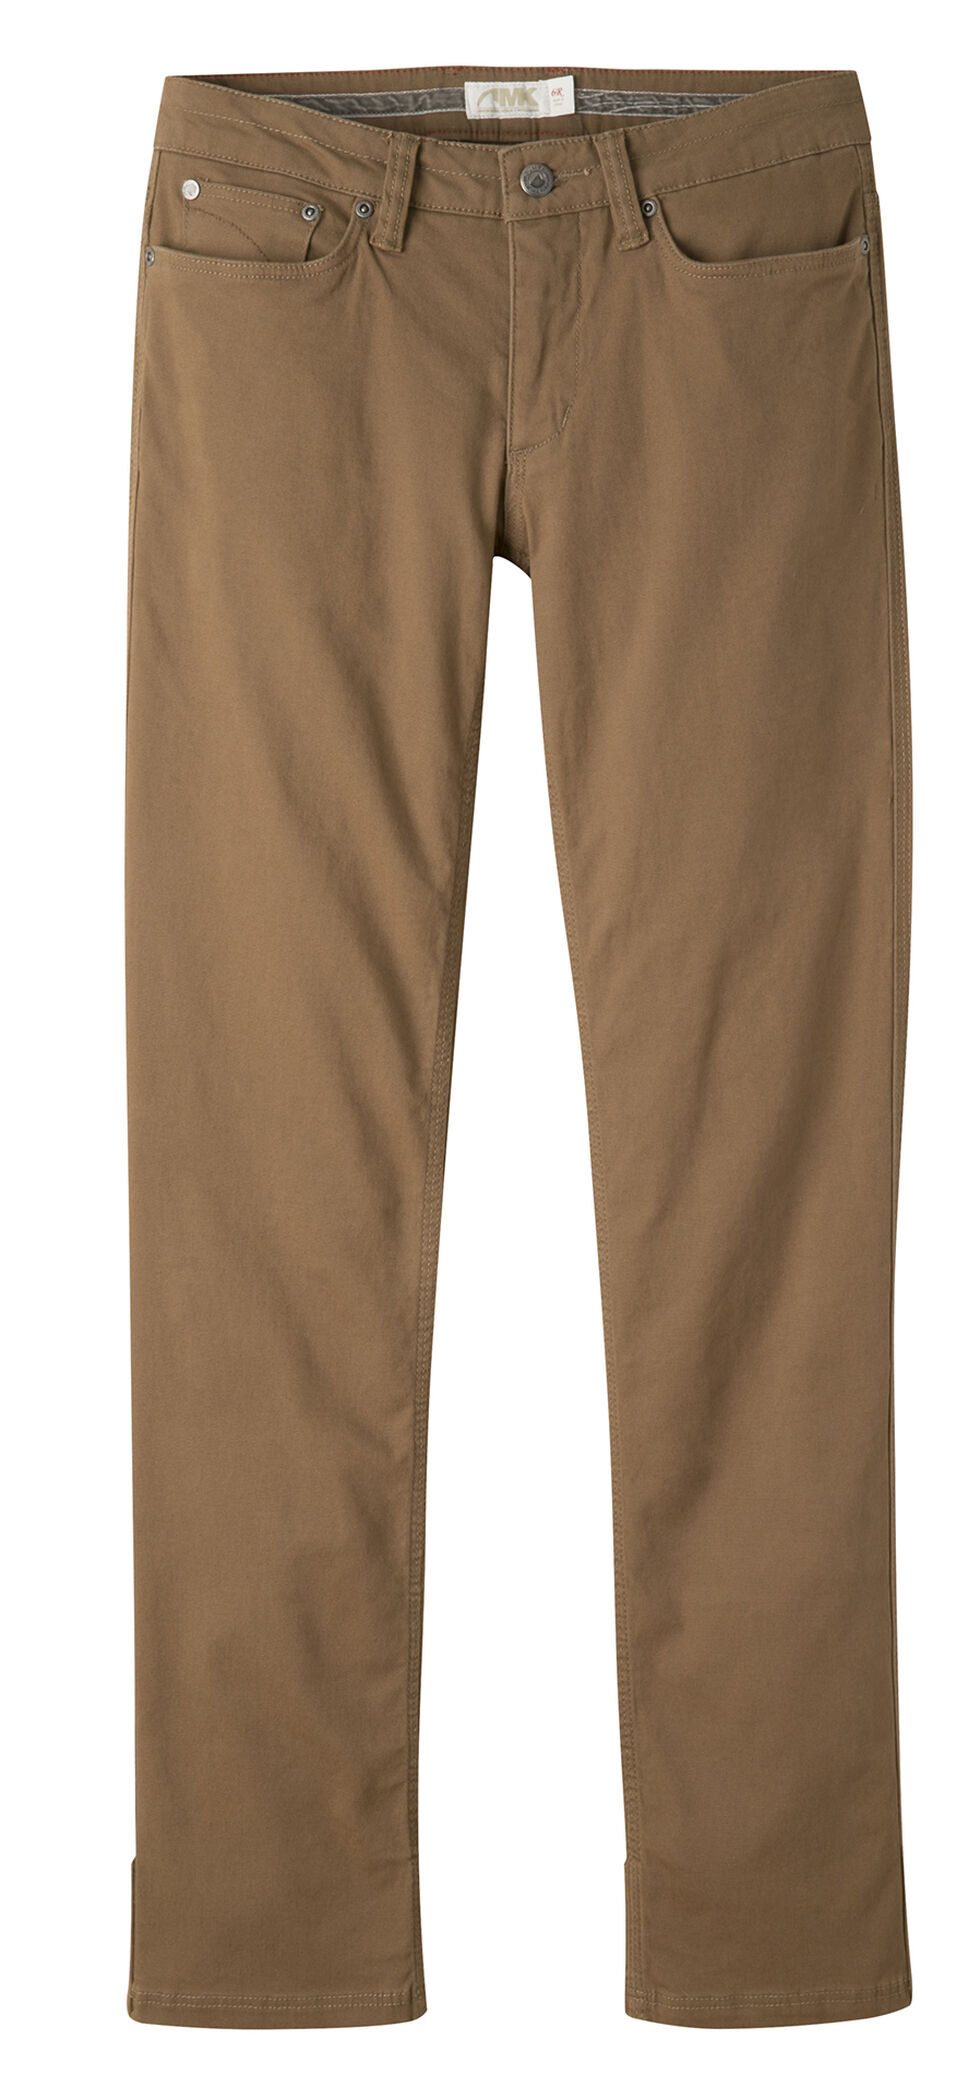 Mountain Khakis Women's Classic Fit Camber 106 Pants, Brown, hi-res